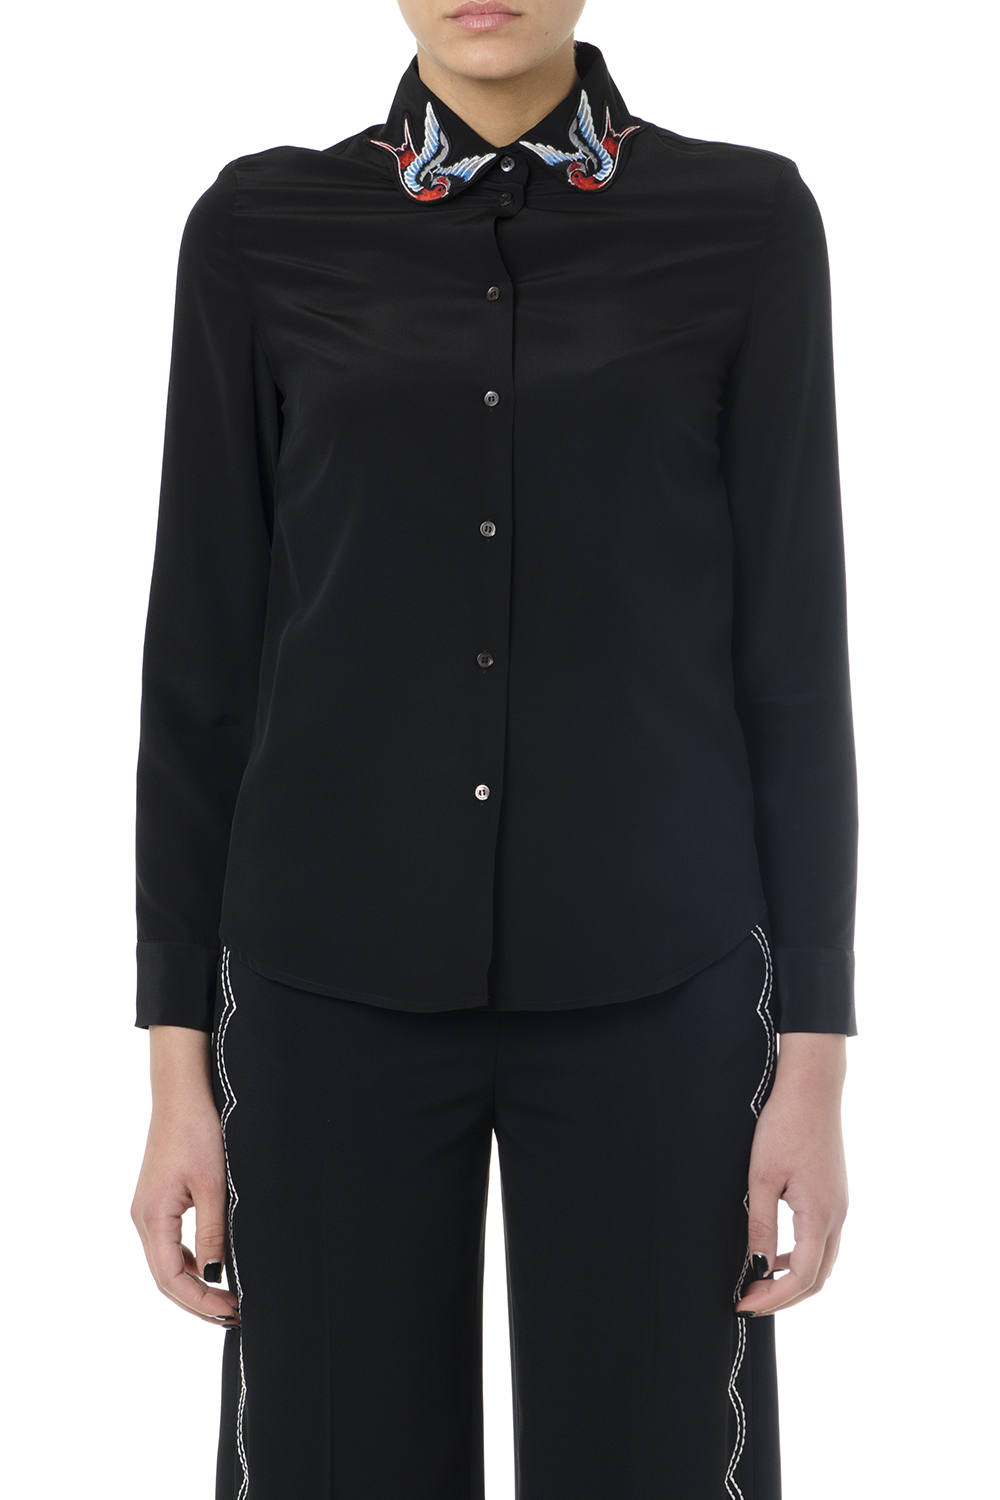 7489d51833 BLACK SILK SHIRT WITH EMBROIDERED COLLAR SS 2019